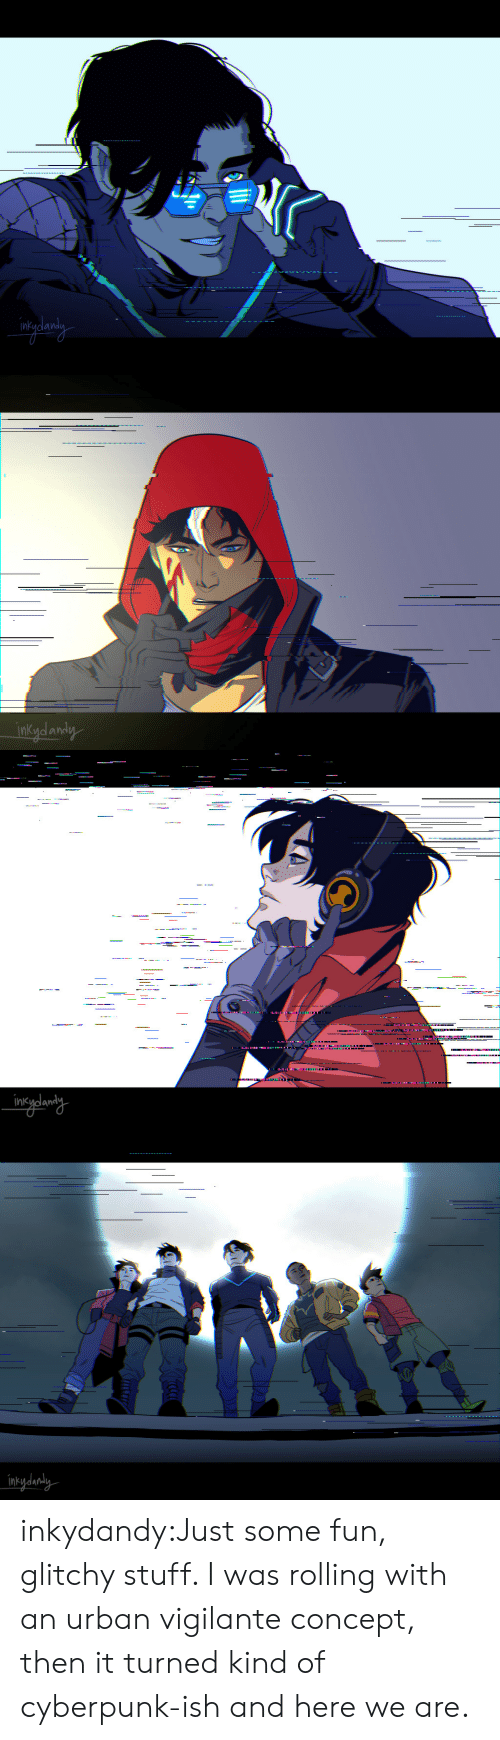 Just Some: inkydandy   ------.-  .  intydanaly inkydandy:Just some fun, glitchy stuff. I was rolling with an urban vigilante concept, then it turned kind of cyberpunk-ish and here we are.